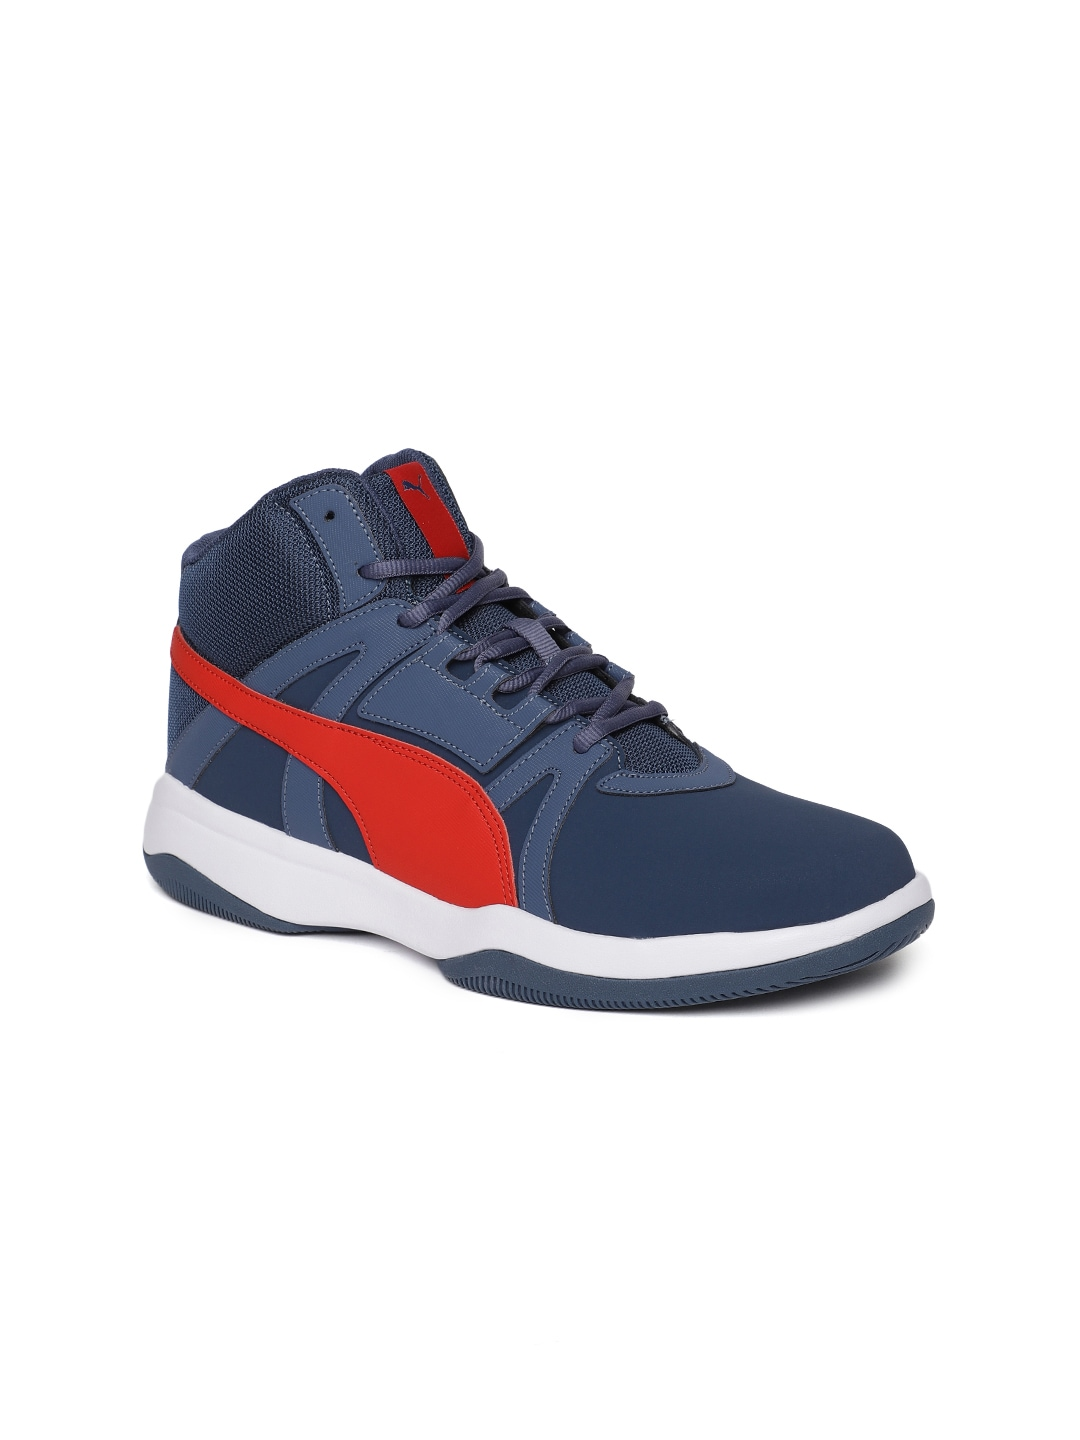 d04762945d301 Puma Rebound Shoes - Buy Puma Rebound Shoes online in India